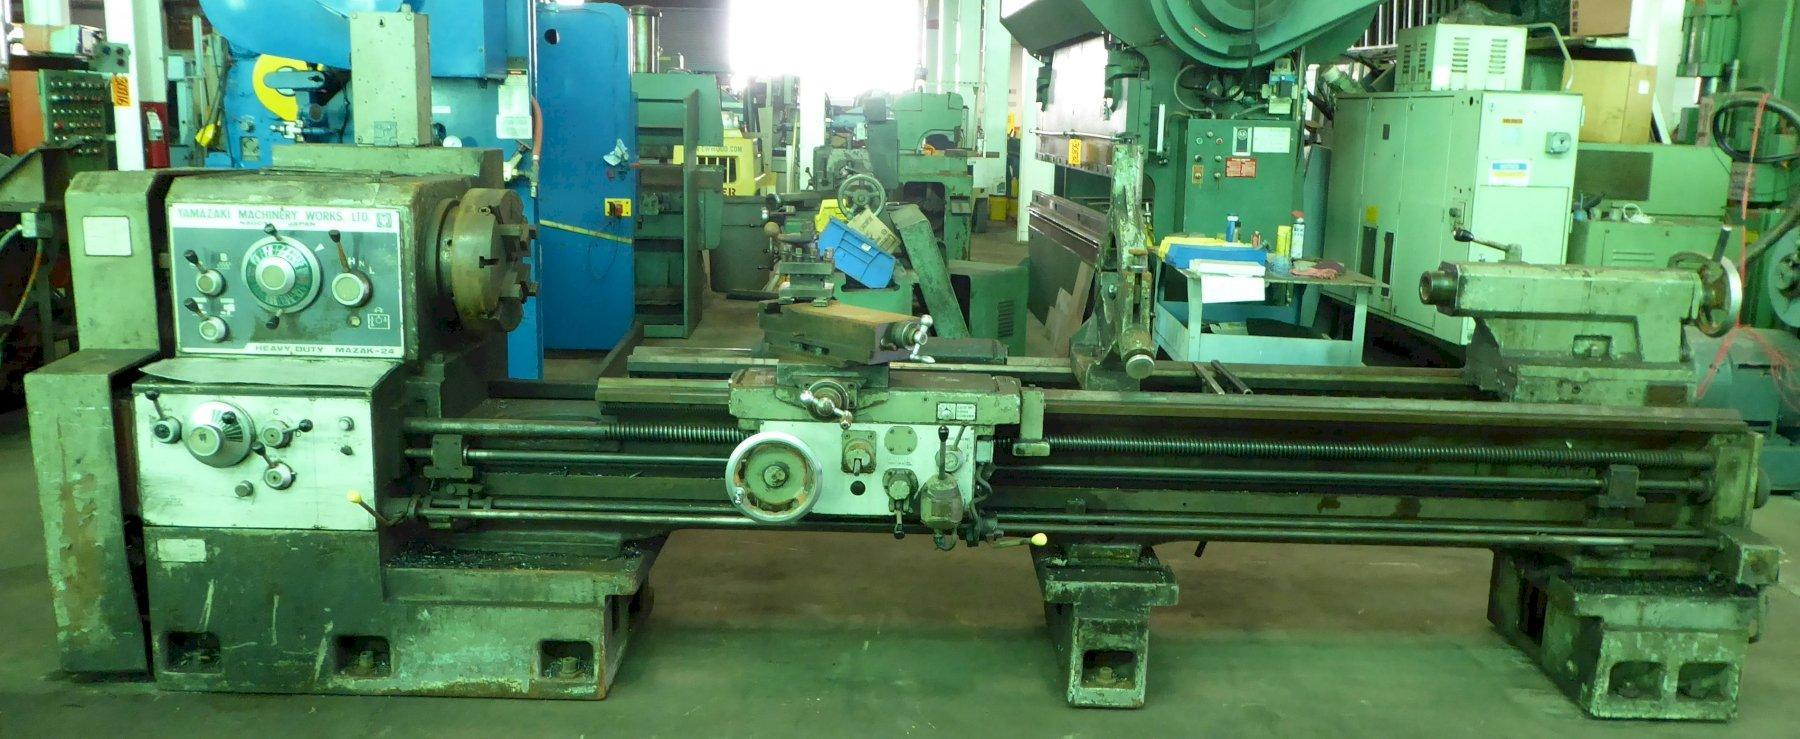 "24""/40"" x 100"" Mazak Lathe, Gap Bed, 12-1200 RPM, Inch/mm, 4"" Hole, 20 HP, Low Price"